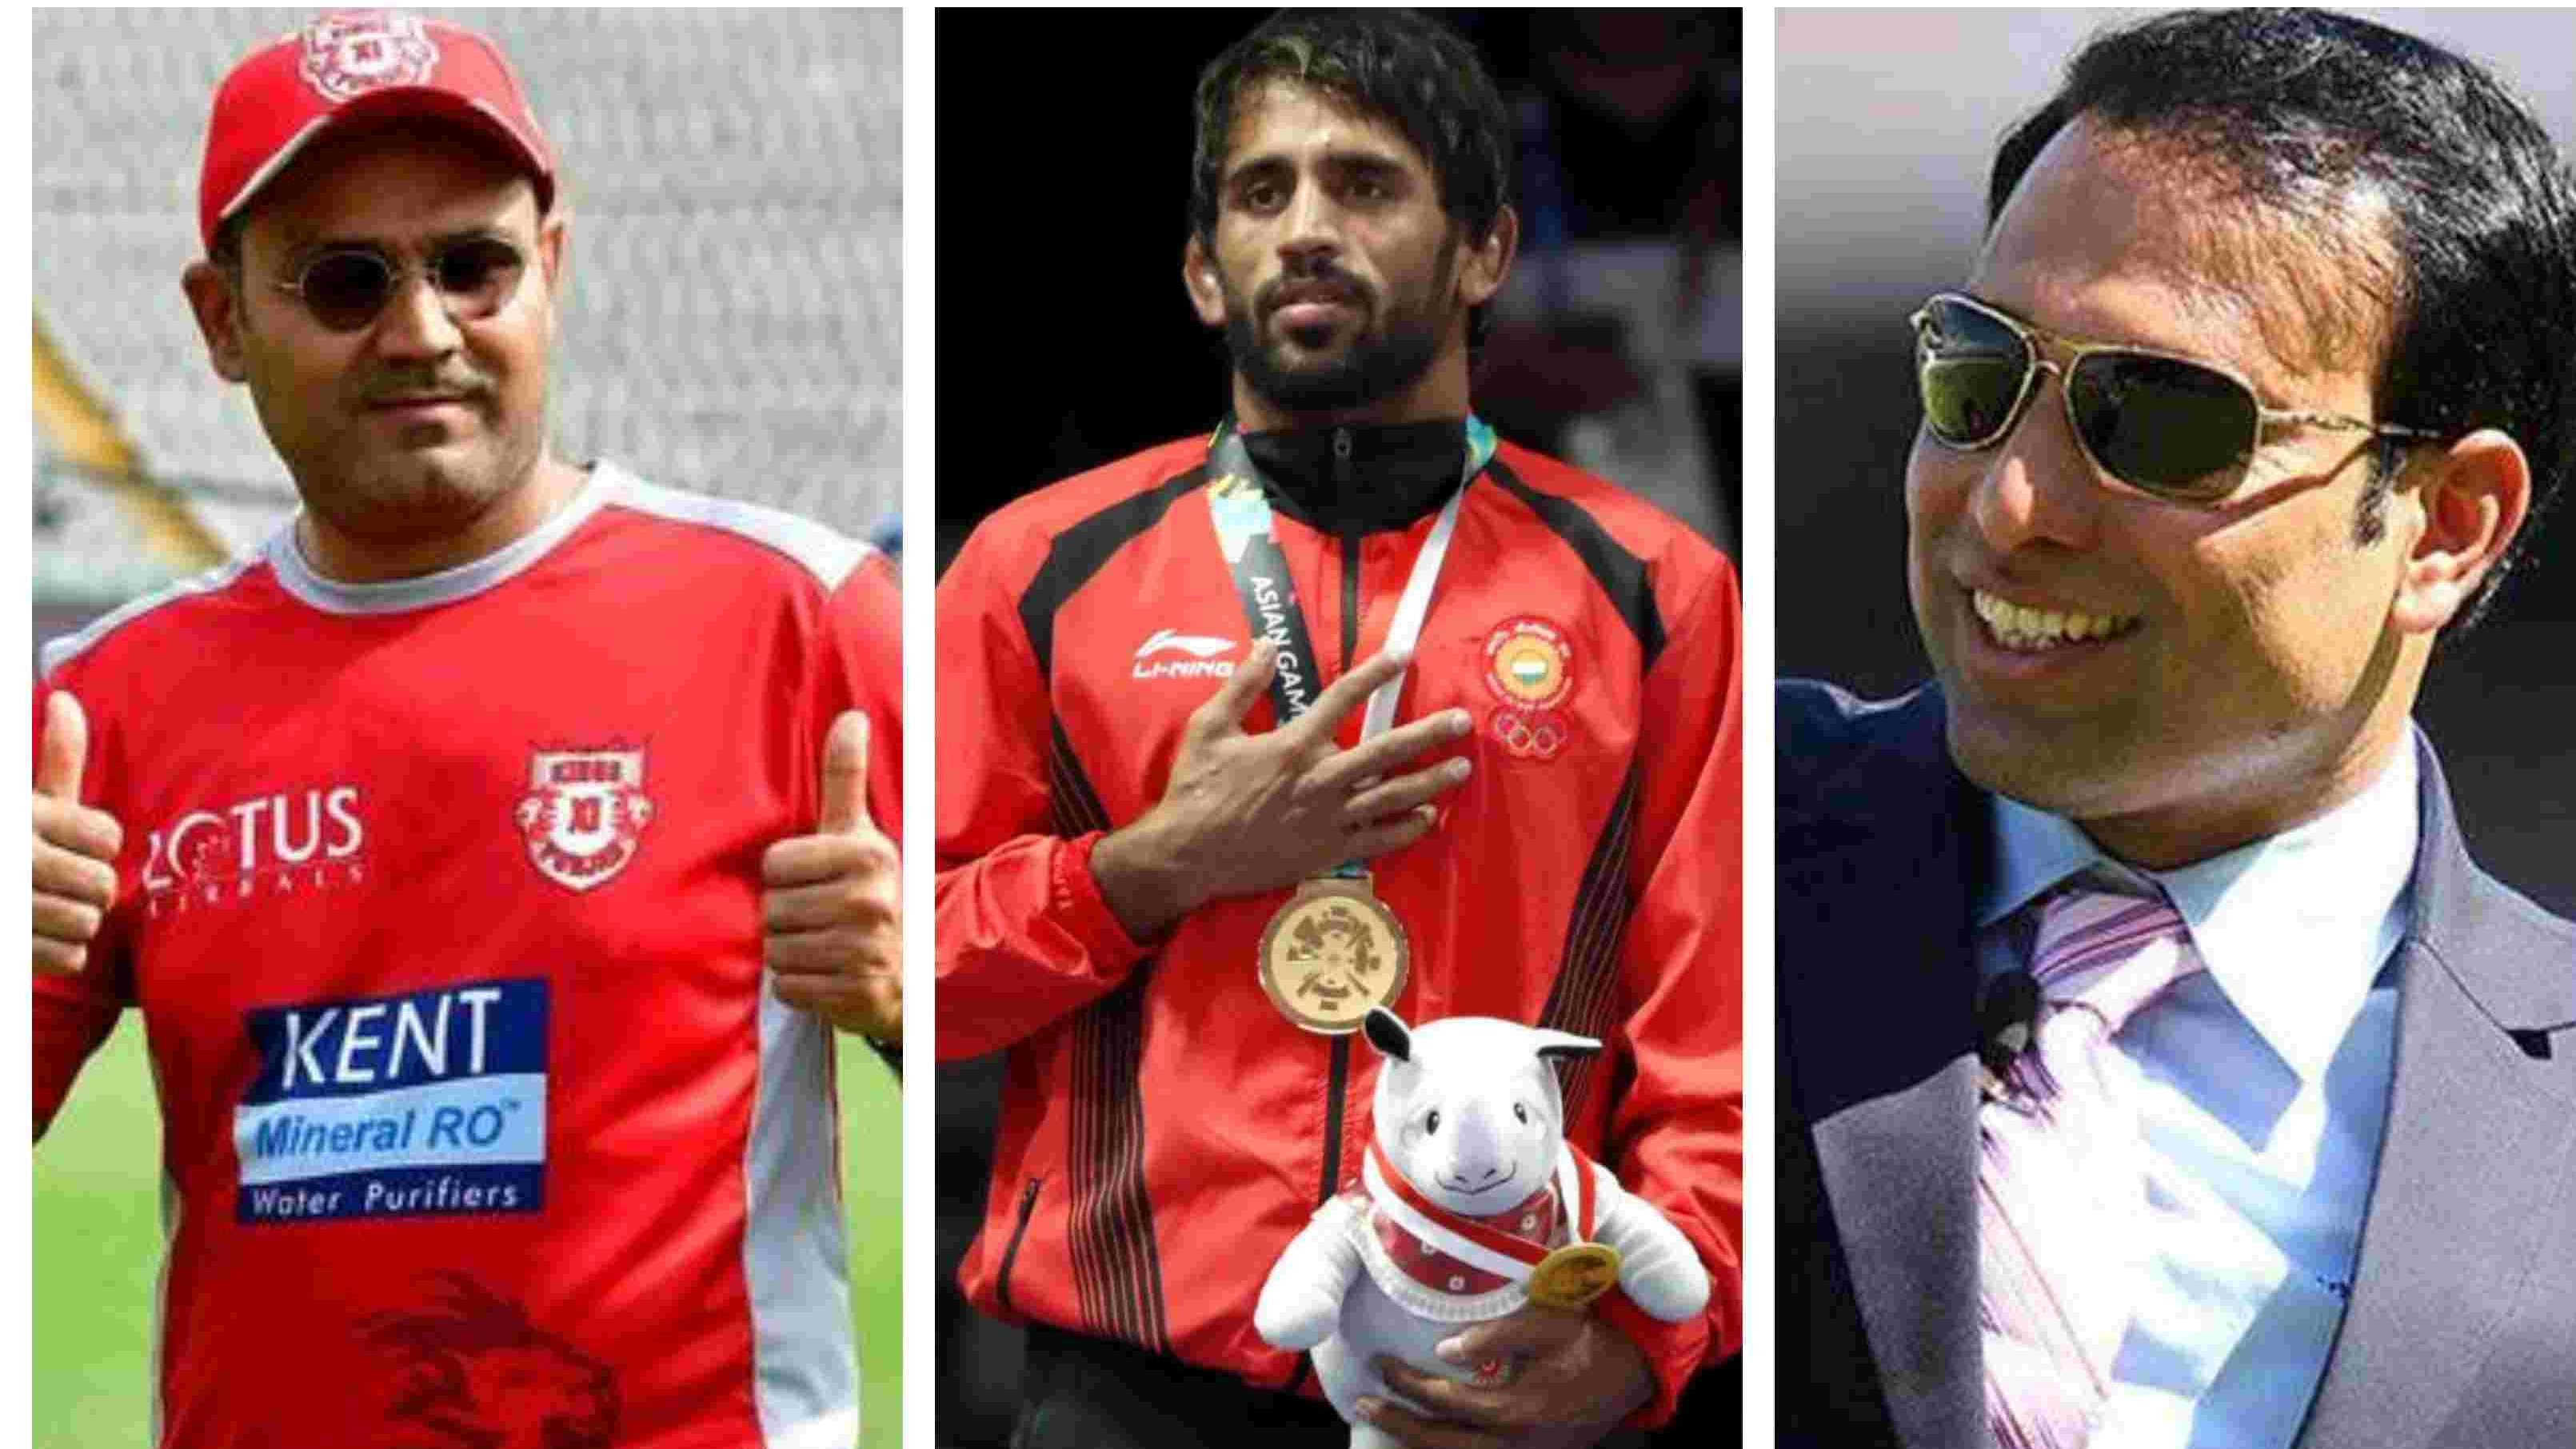 Indian cricket fraternity laud wrestler Bajrang Punia after he wins first gold for India in the Asian Games